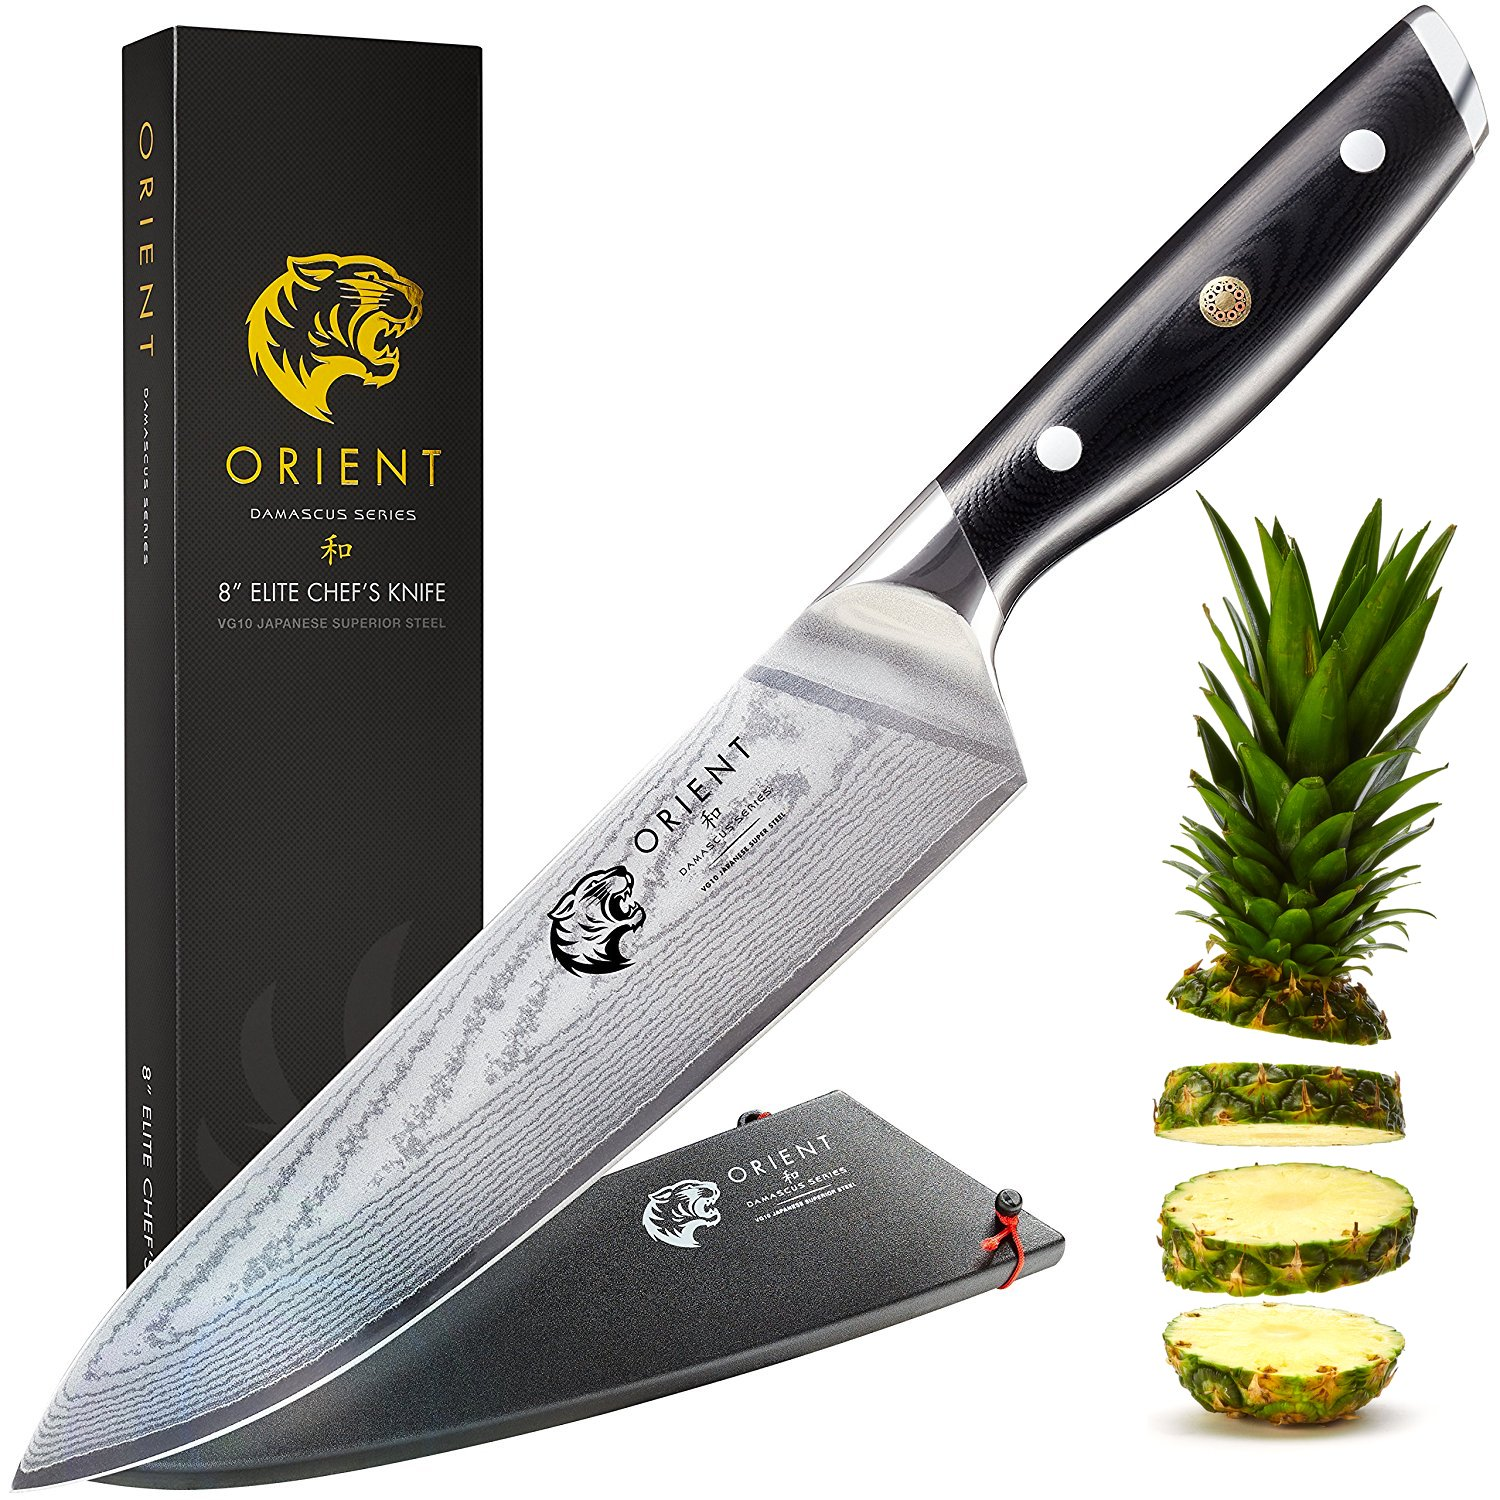 Orient 8 inch Damascus Japanese Chef Knife VG10 Ultra Sharp Stainless Steel Cooks Blade, Best Professional Cooking Chef's Knives Elite Series 67 Layer Gift Box & Sheath by ORIENT